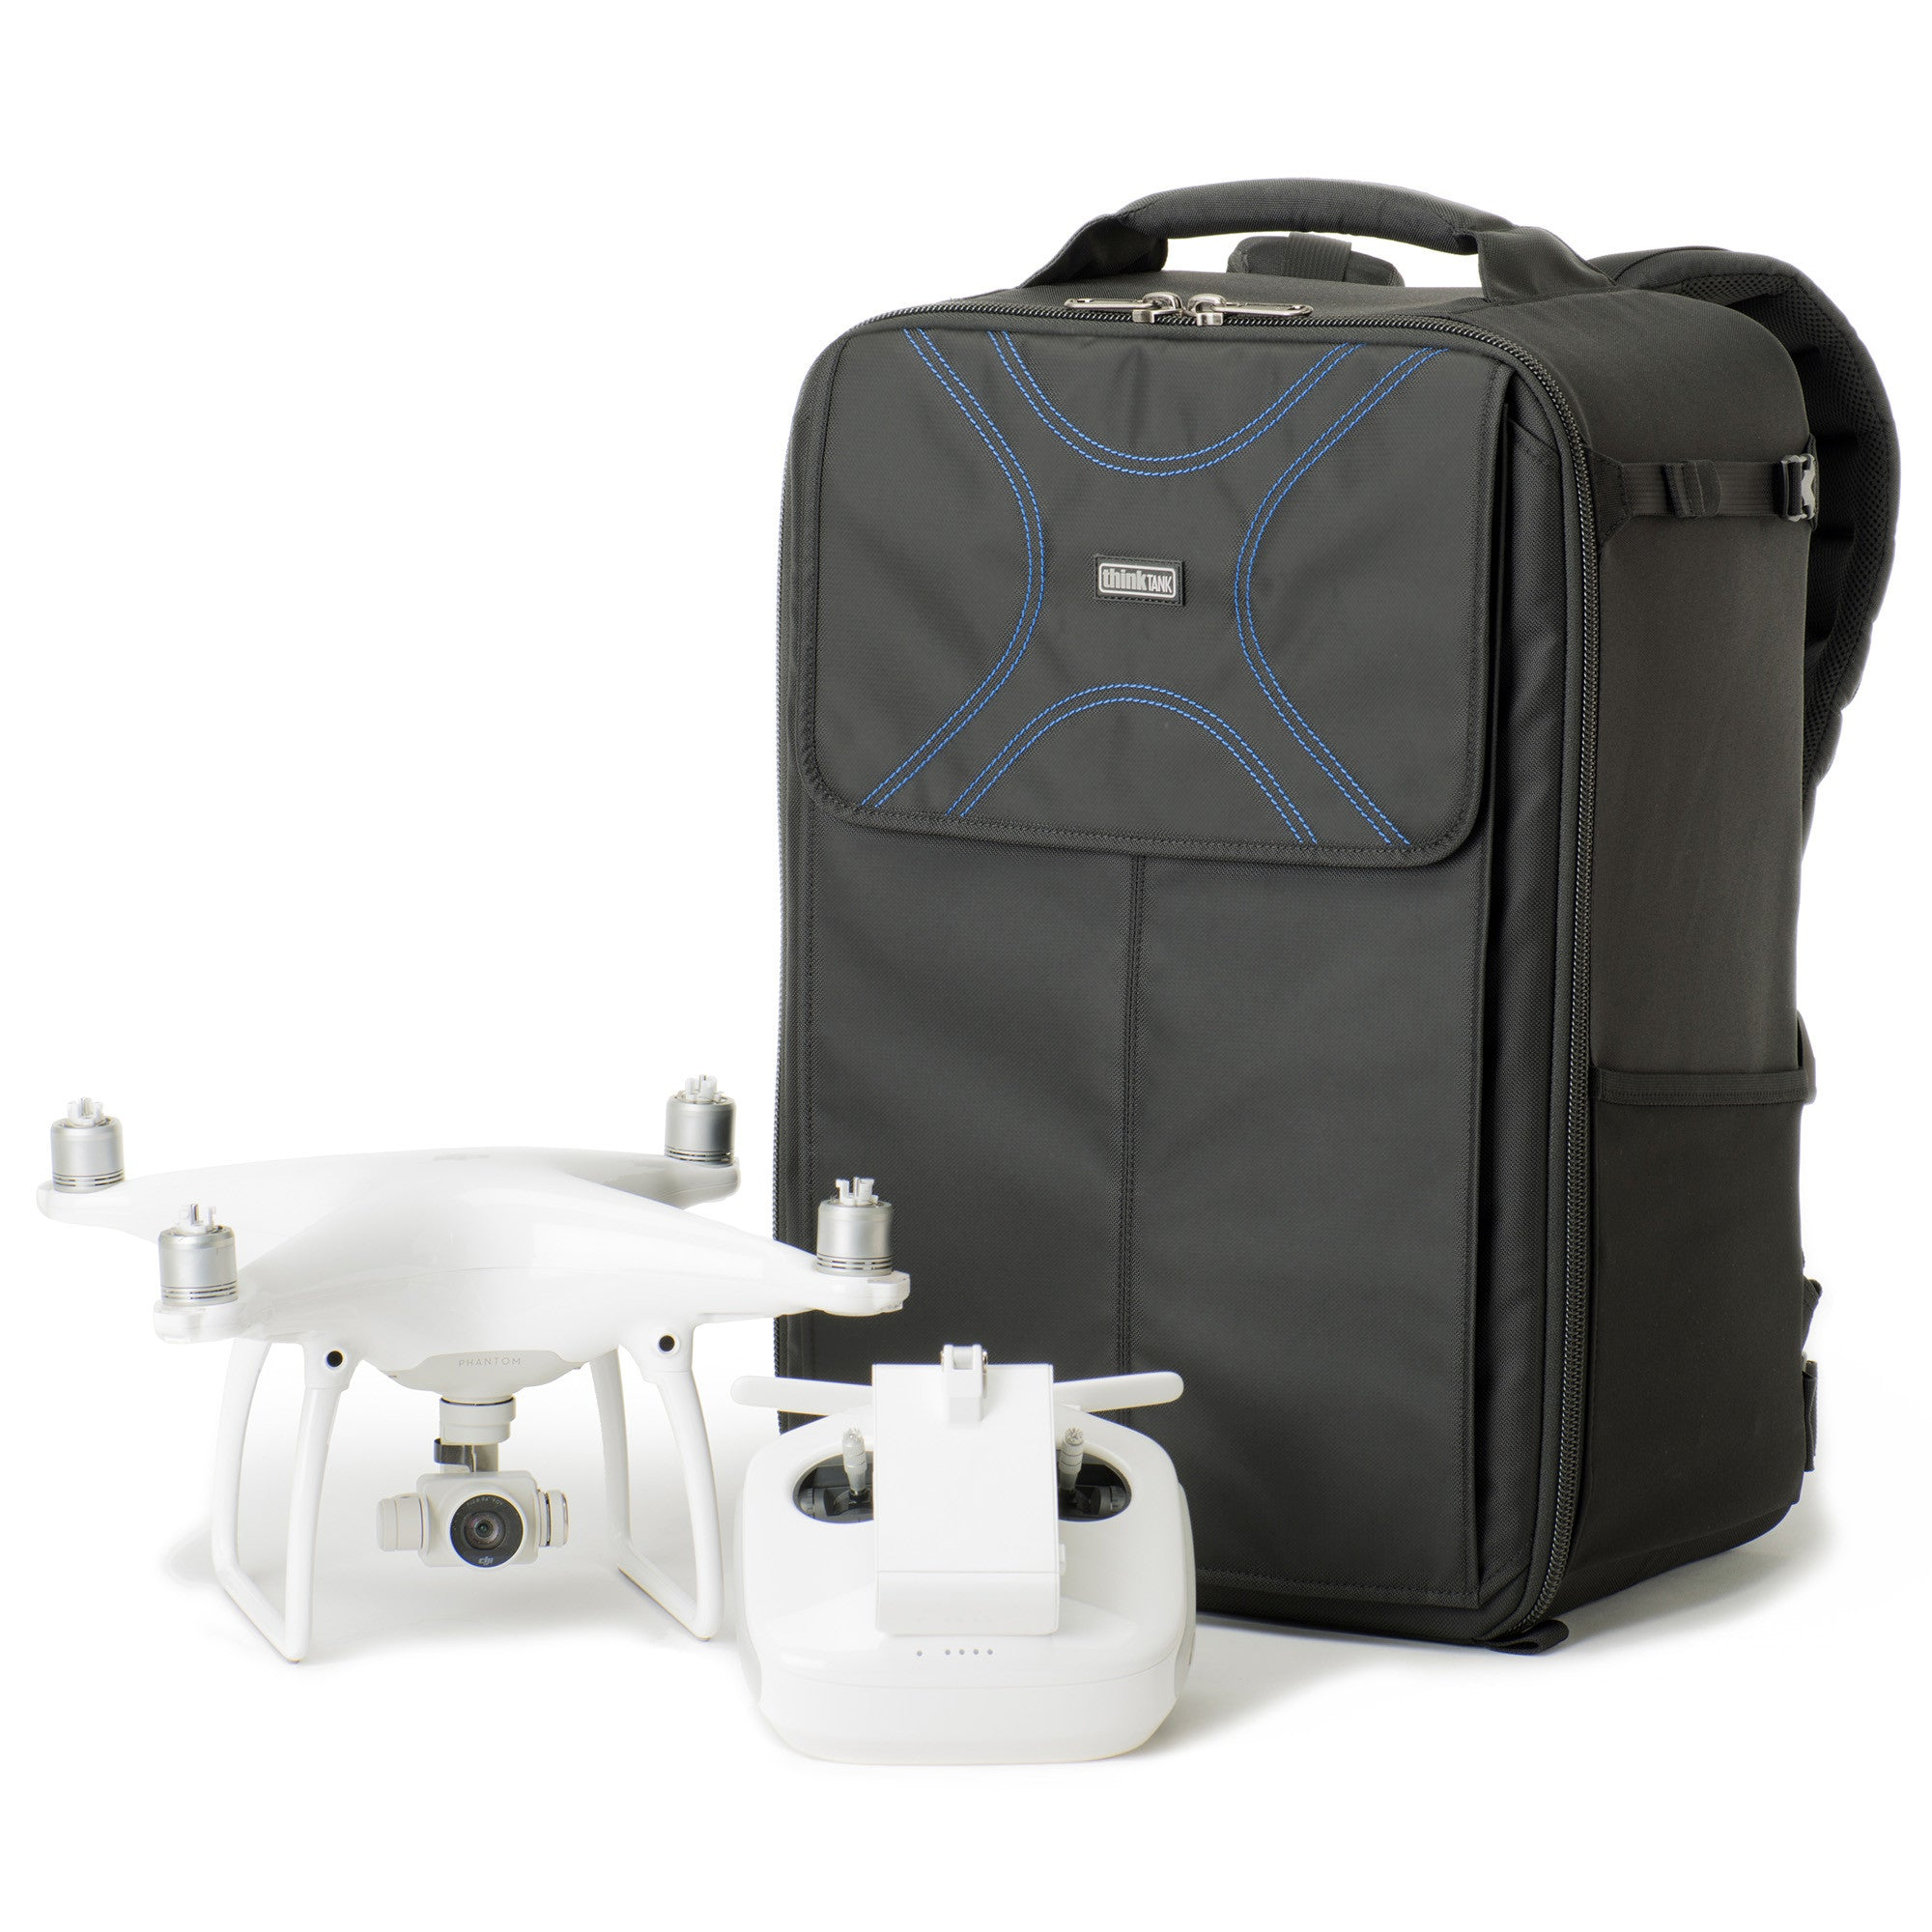 Airport Helipak V2.0 for DJI Phantom is protective, lightweight and very portable